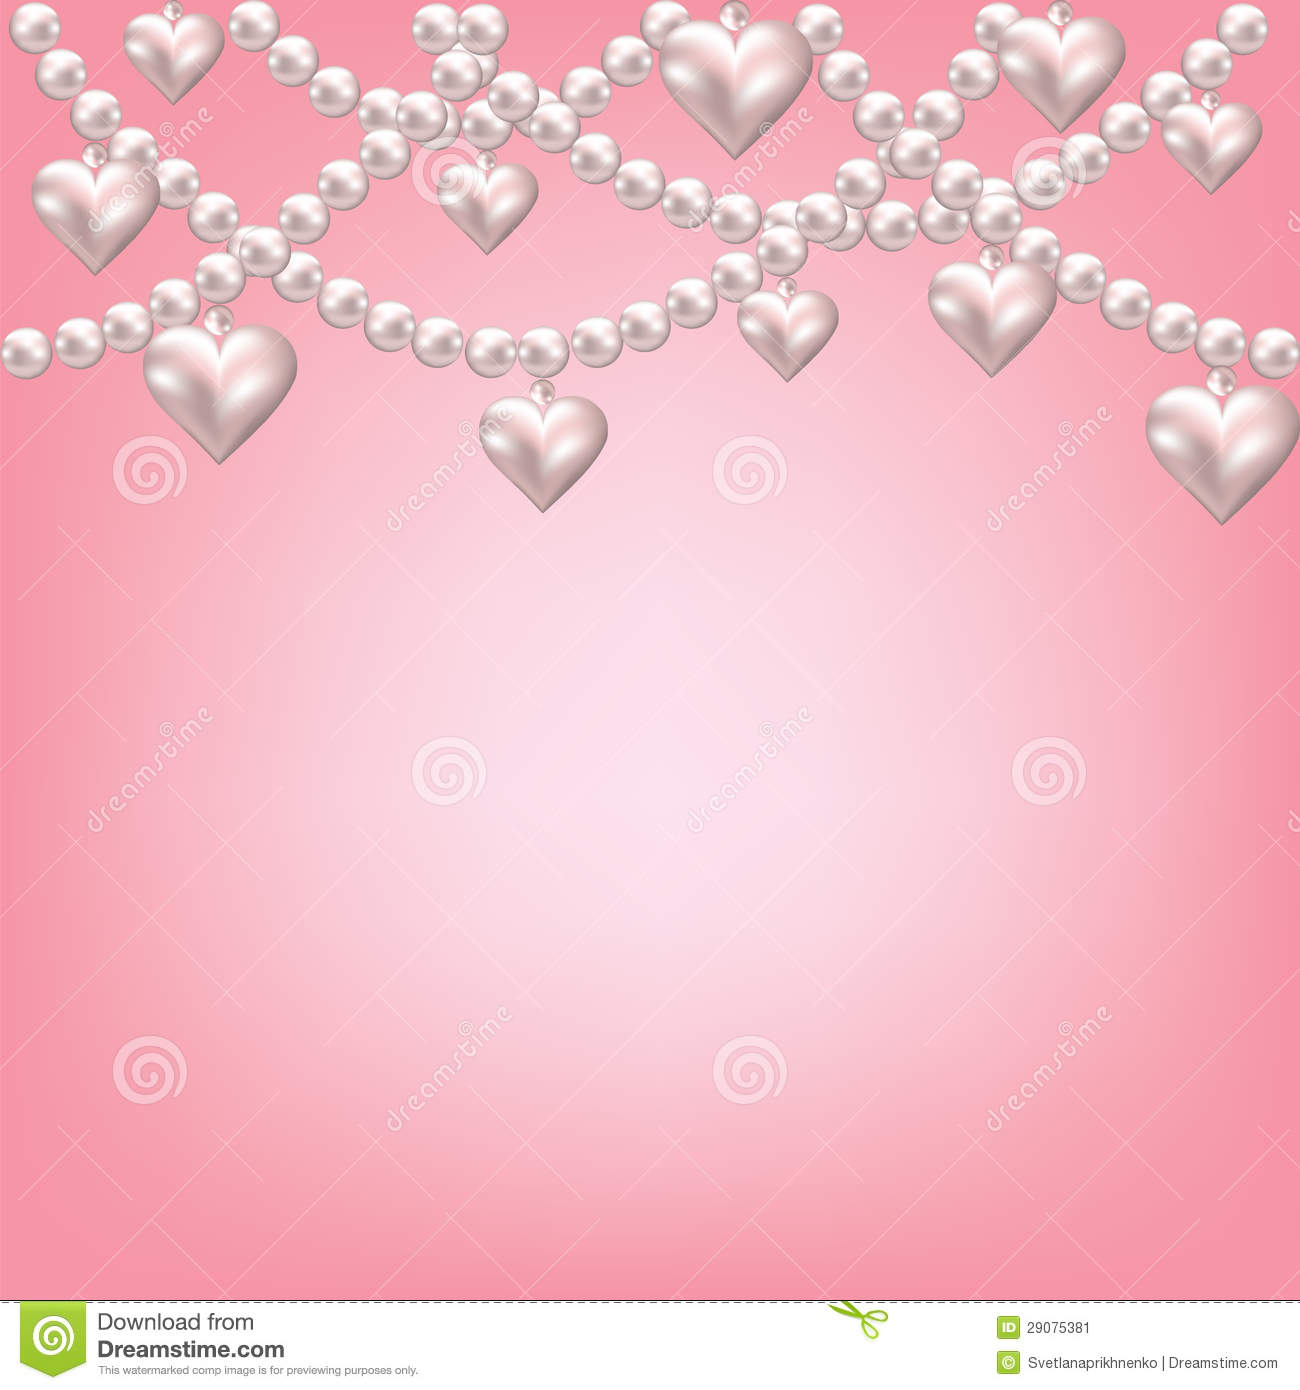 Heart pearl necklace stock vector. Illustration of bead ...